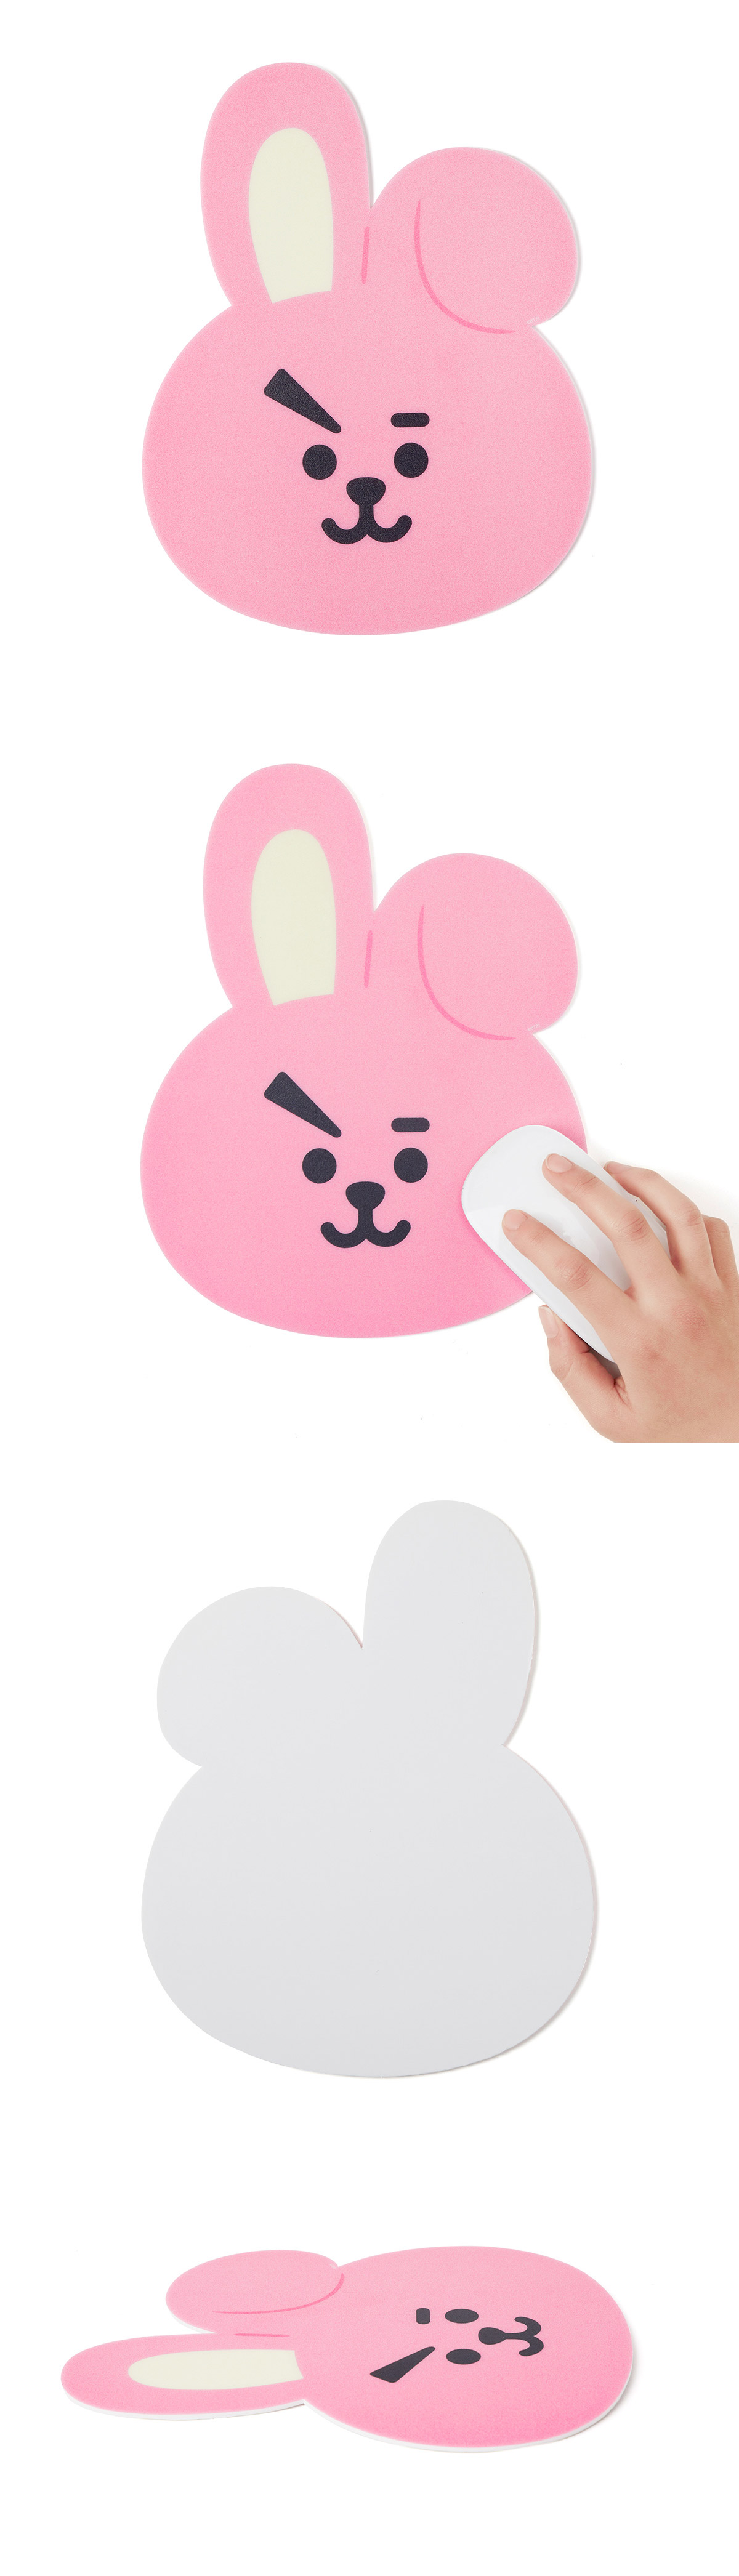 bt21_mousepad_05.jpg